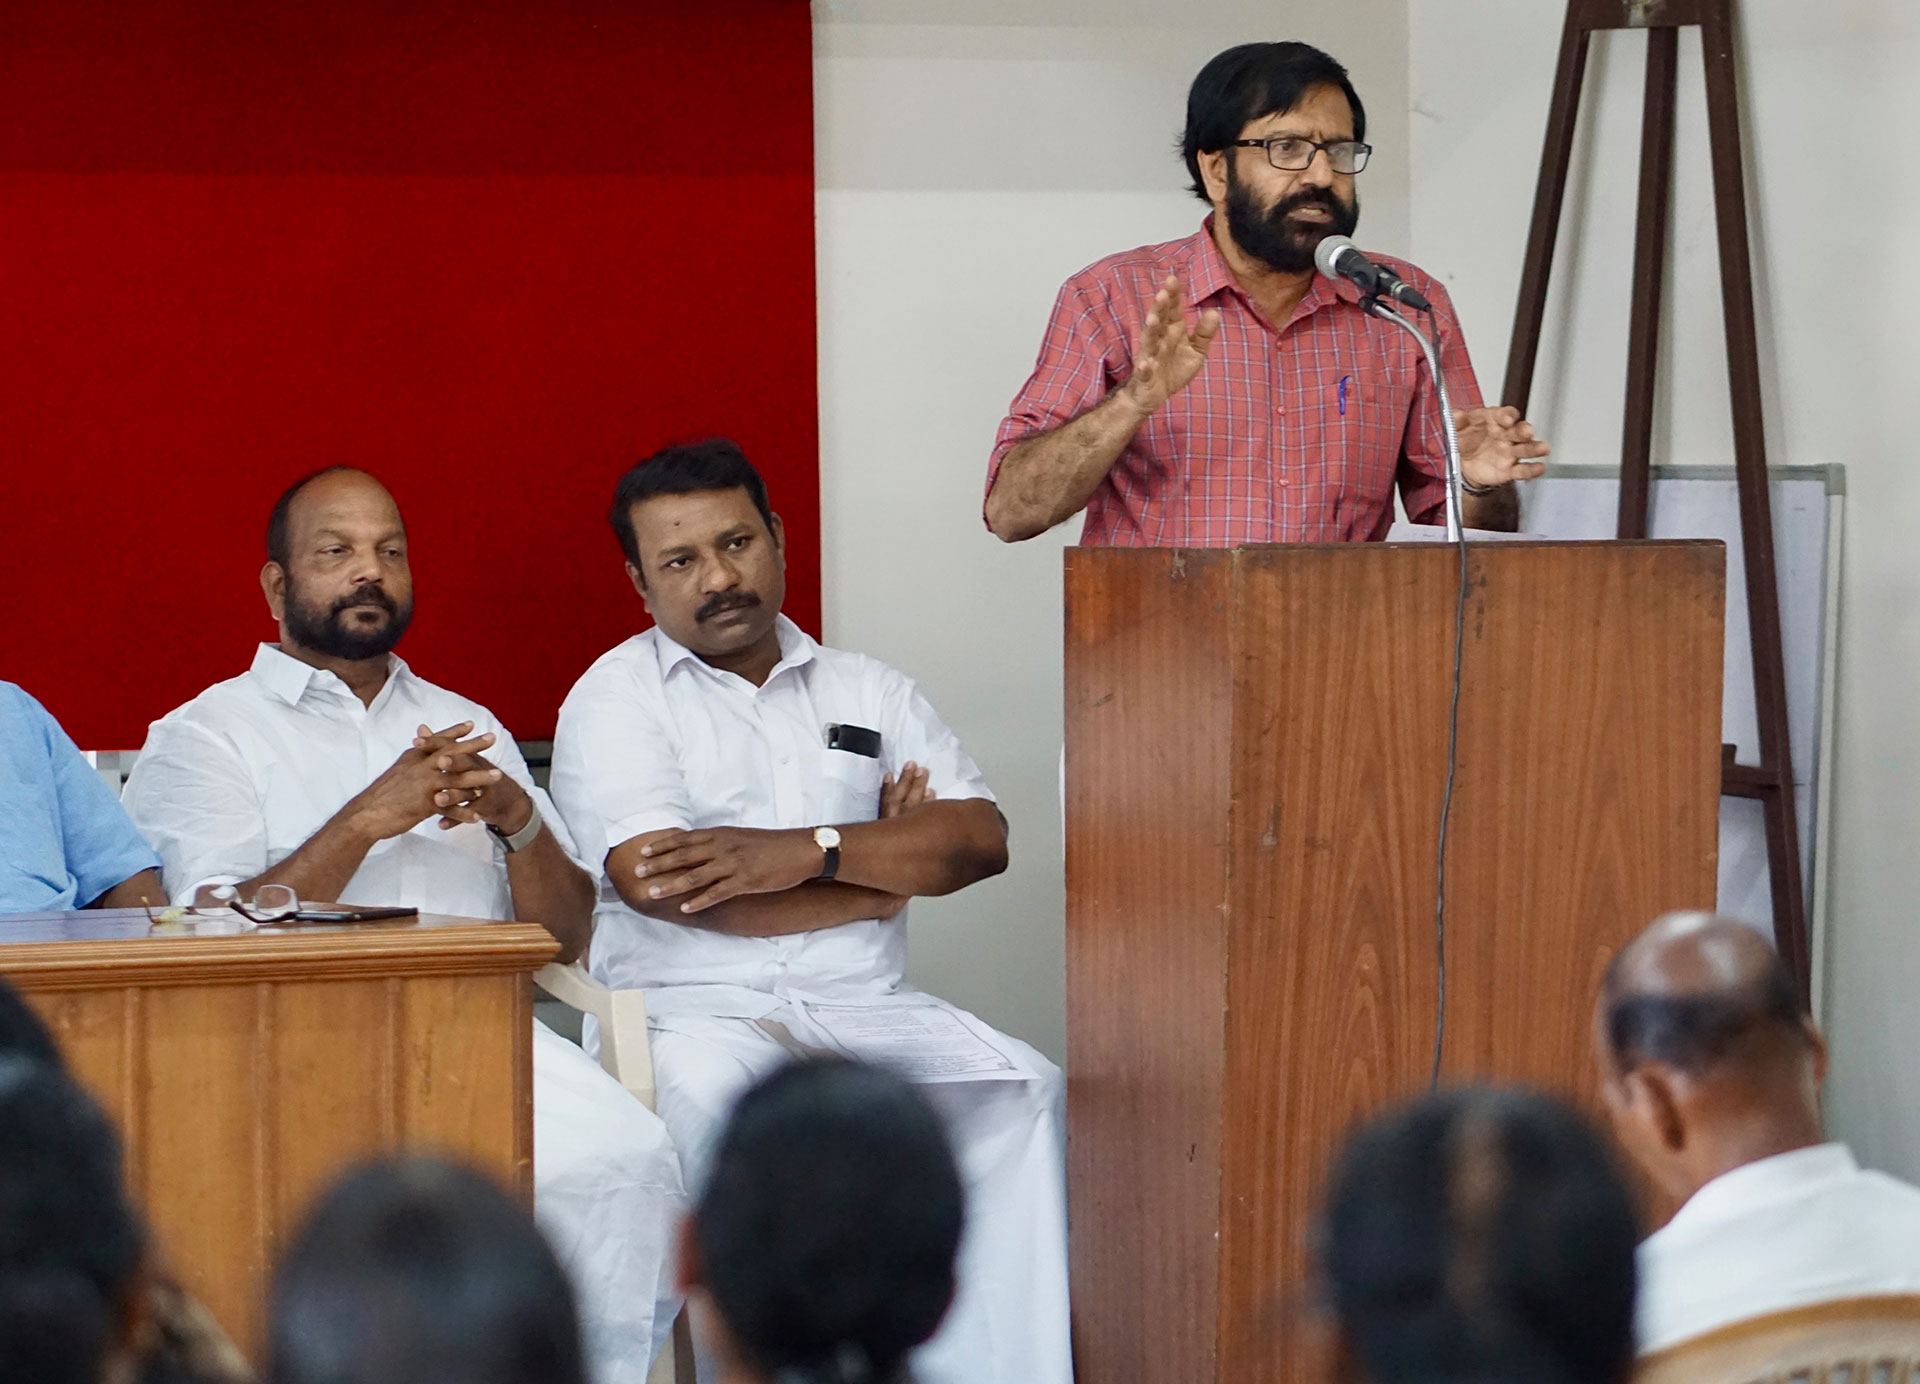 K.P. Ramanunni gives a speech honoring a Dalit leader in Kozhikode. (Photo by Krishna Narayanamurti)